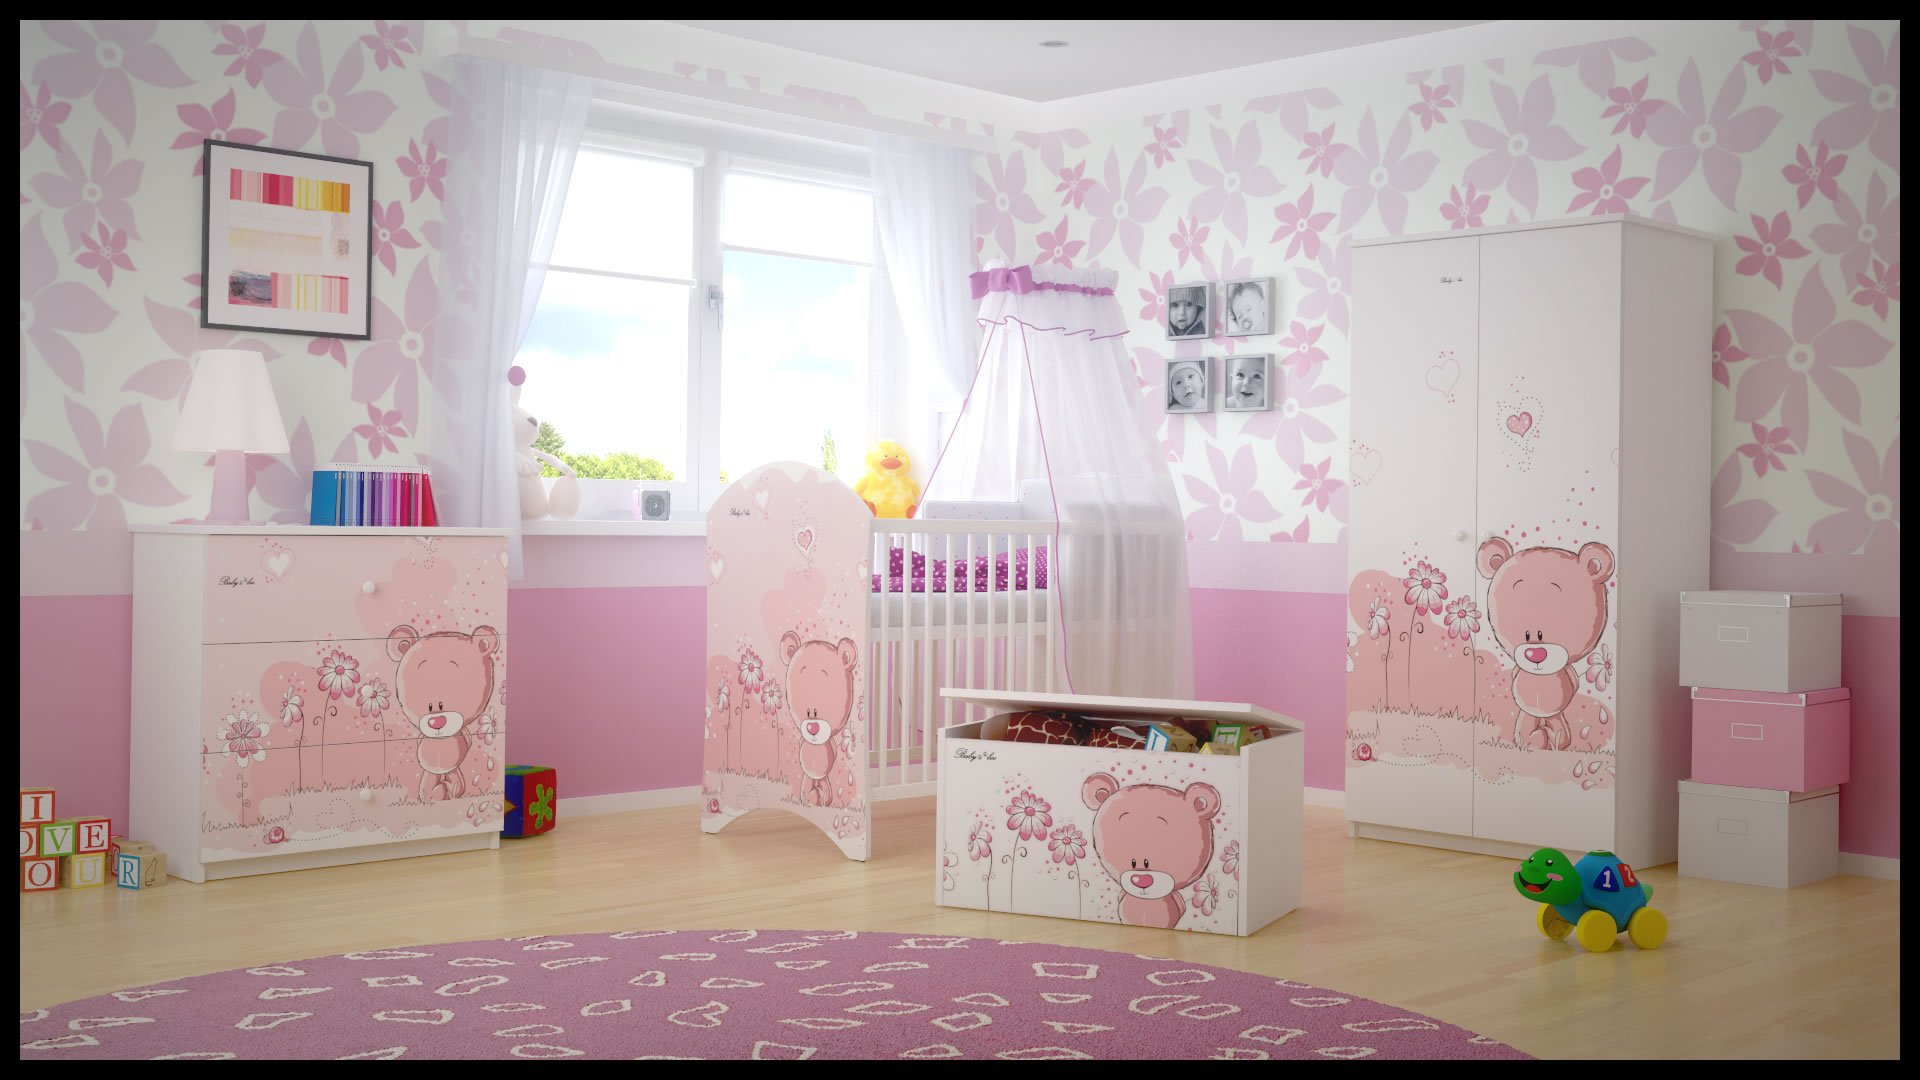 5 PCS BABY NURSERY FURNITURE SET - COT + MATTRESS + WARDROBE + CHEST OF DRAWERS + TOY BOX (model 18)  Included: cot + mattress + wardrobe + chest of drawers + toy box Material: wood GREAT QUALITY 1